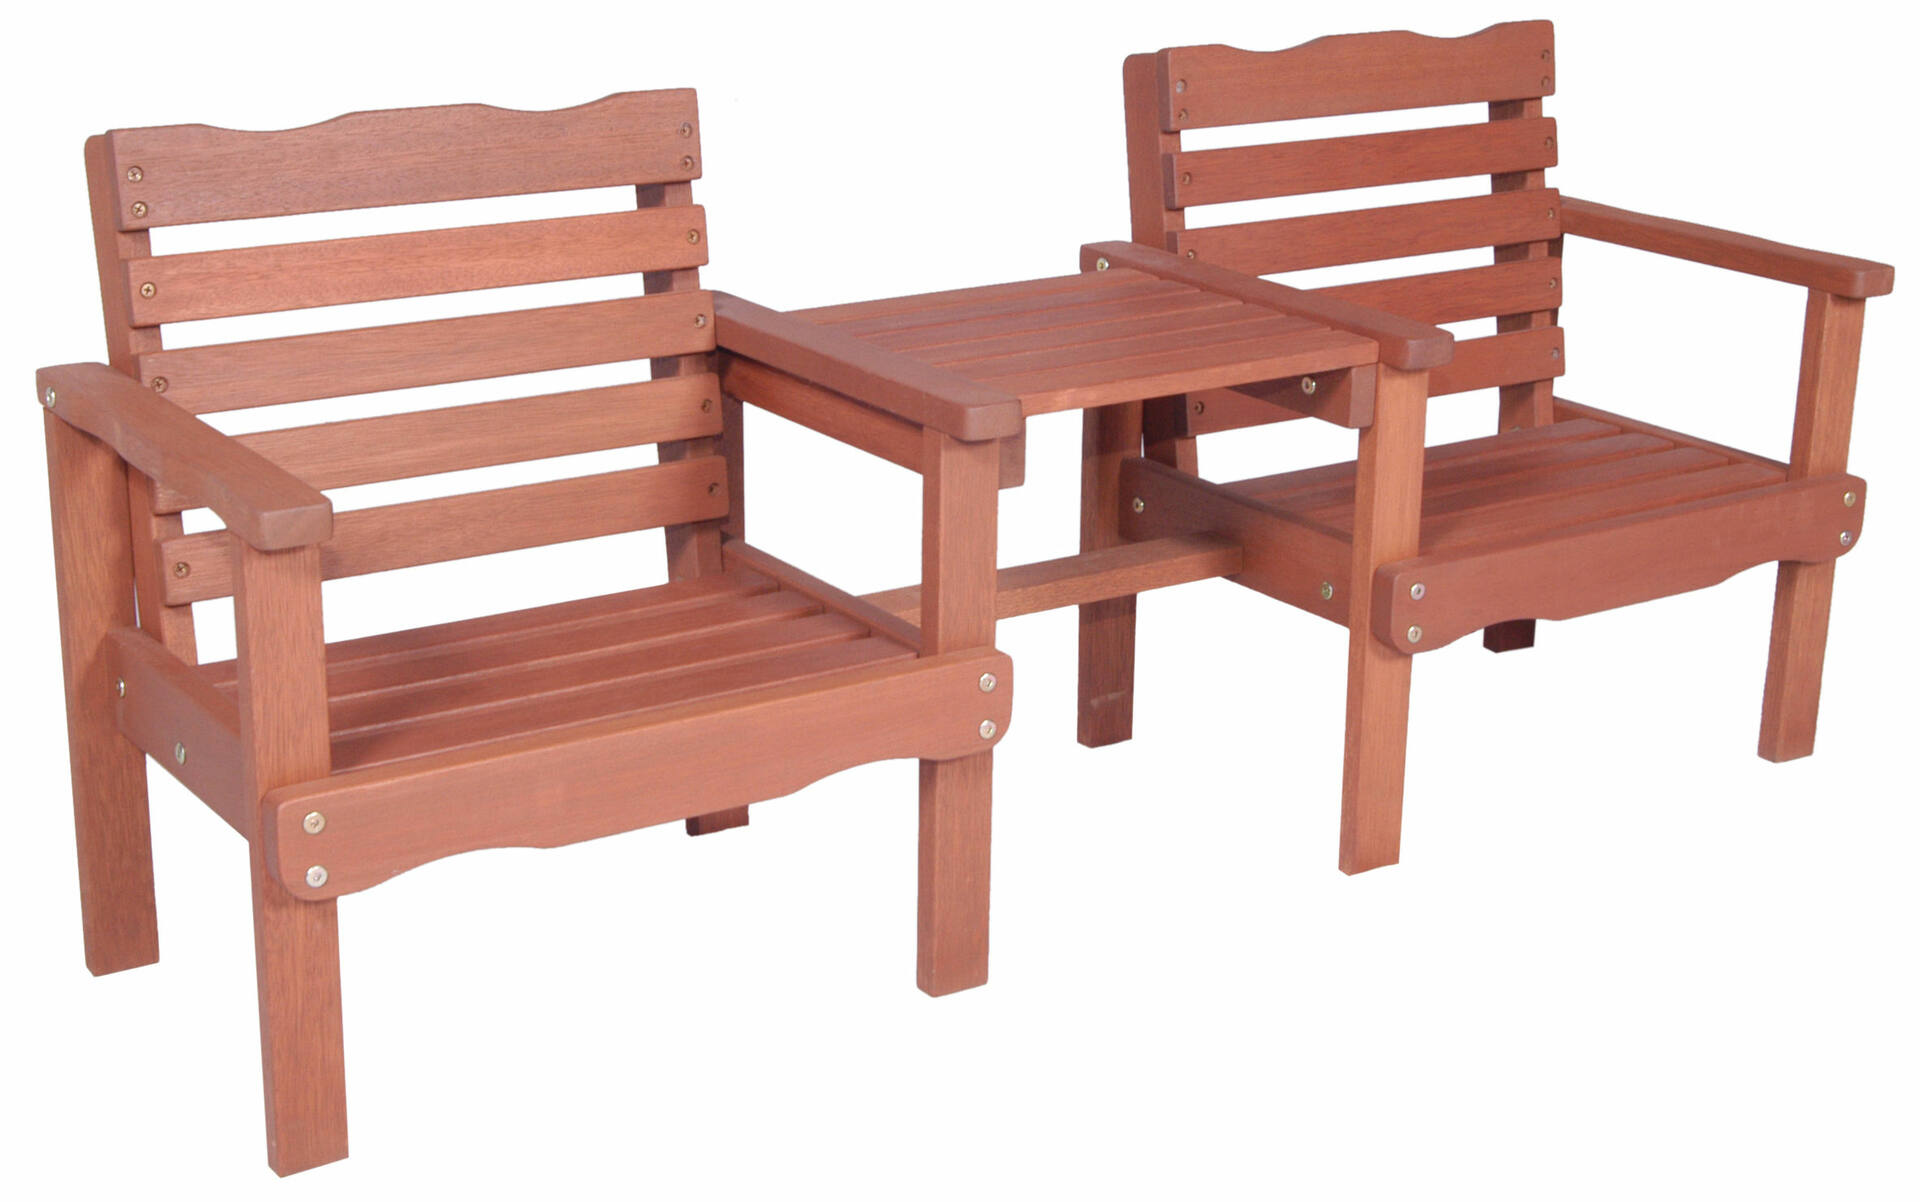 colored wood patio furniture. Wooden Patio Furniture For Kids/ Item#: KZ-TETE2 Colored Wood